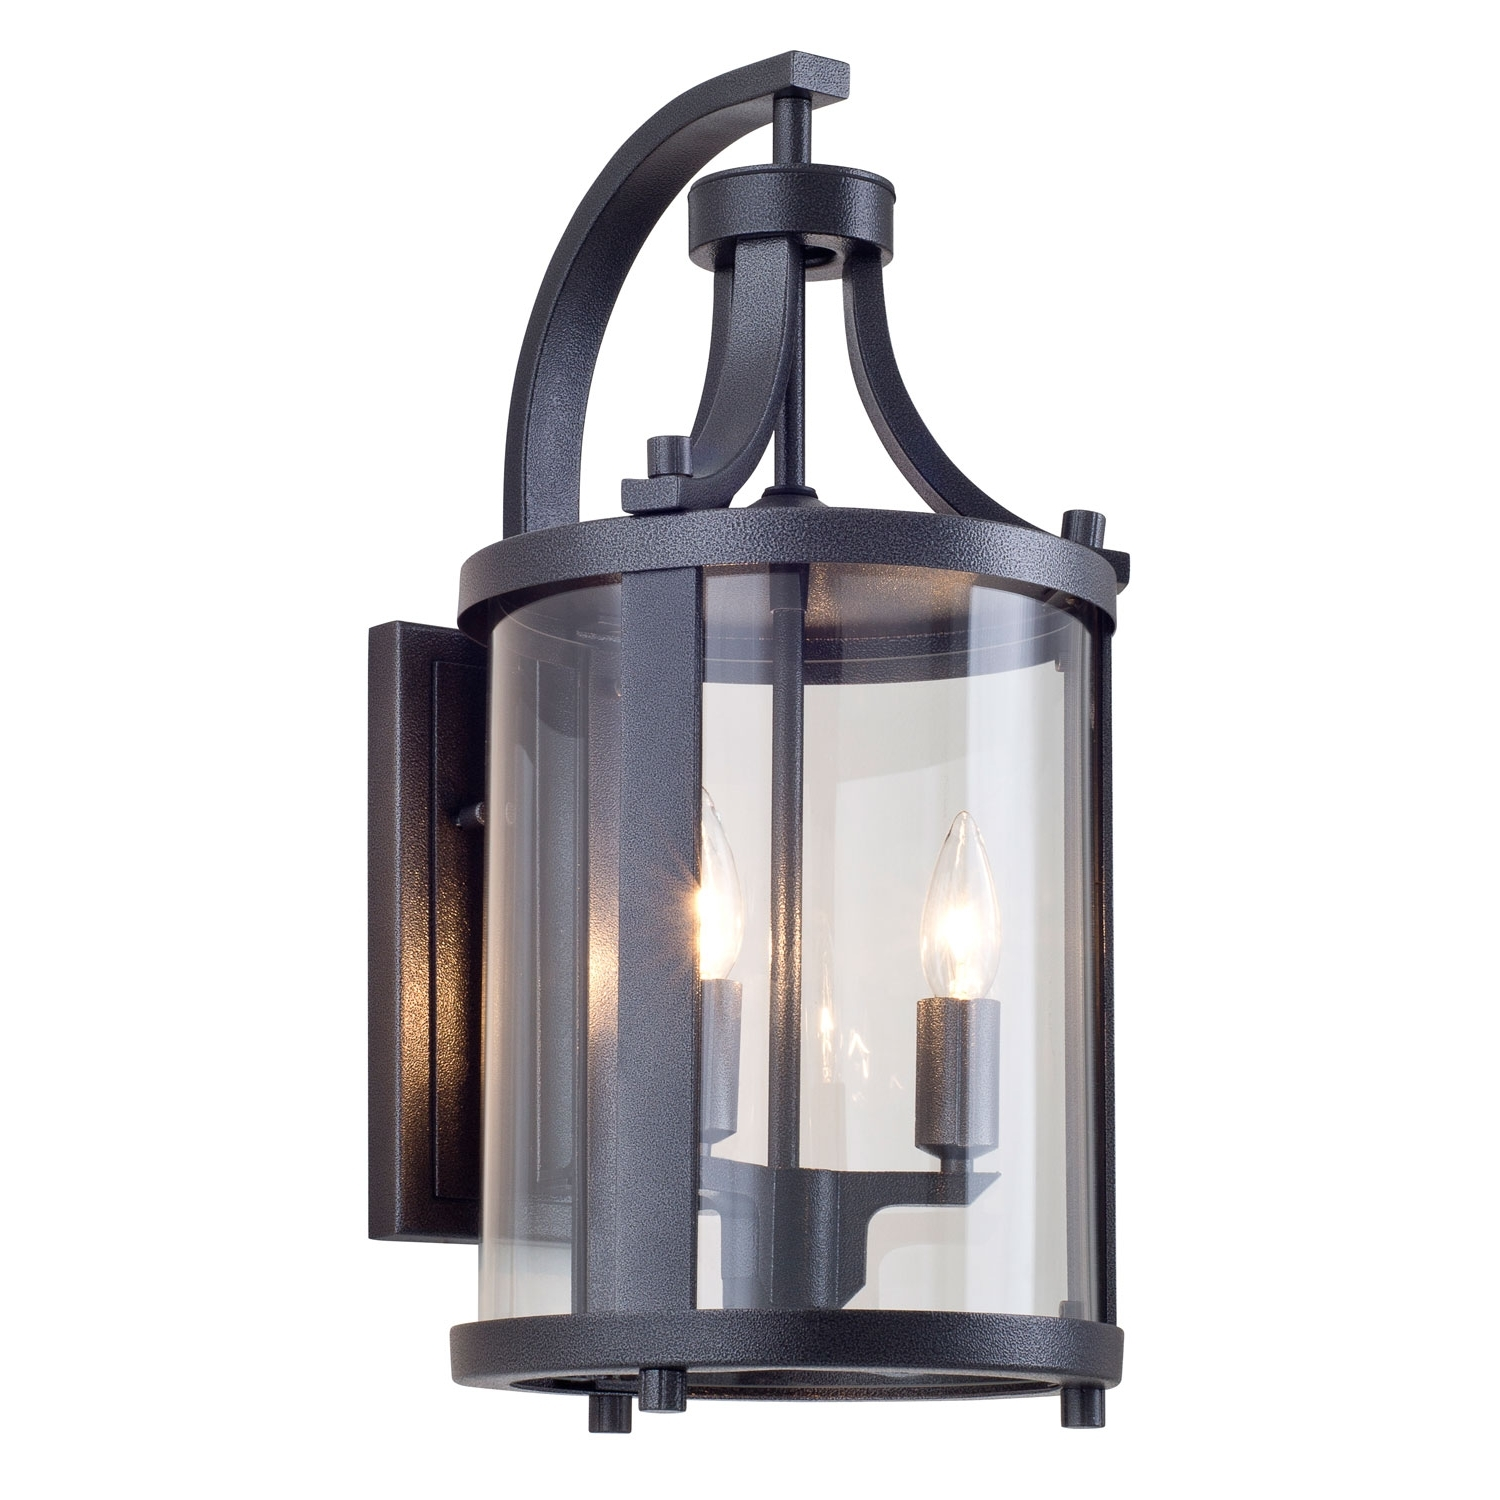 Black Outdoor Wall Lighting In Well Known Niagara Outdoor Hammered Black Two Light Outdoor Sconce Dvi Lighting (View 4 of 20)